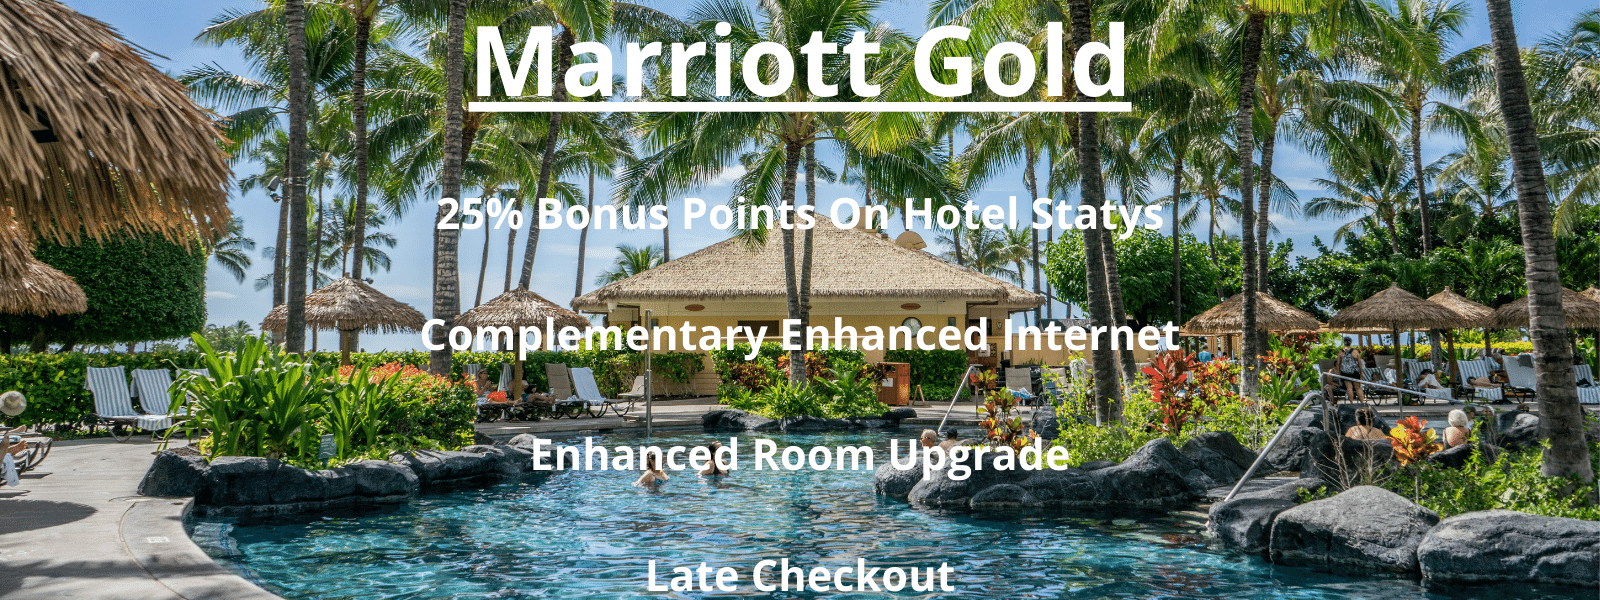 Marriott Hotel Status - Marriott Gold